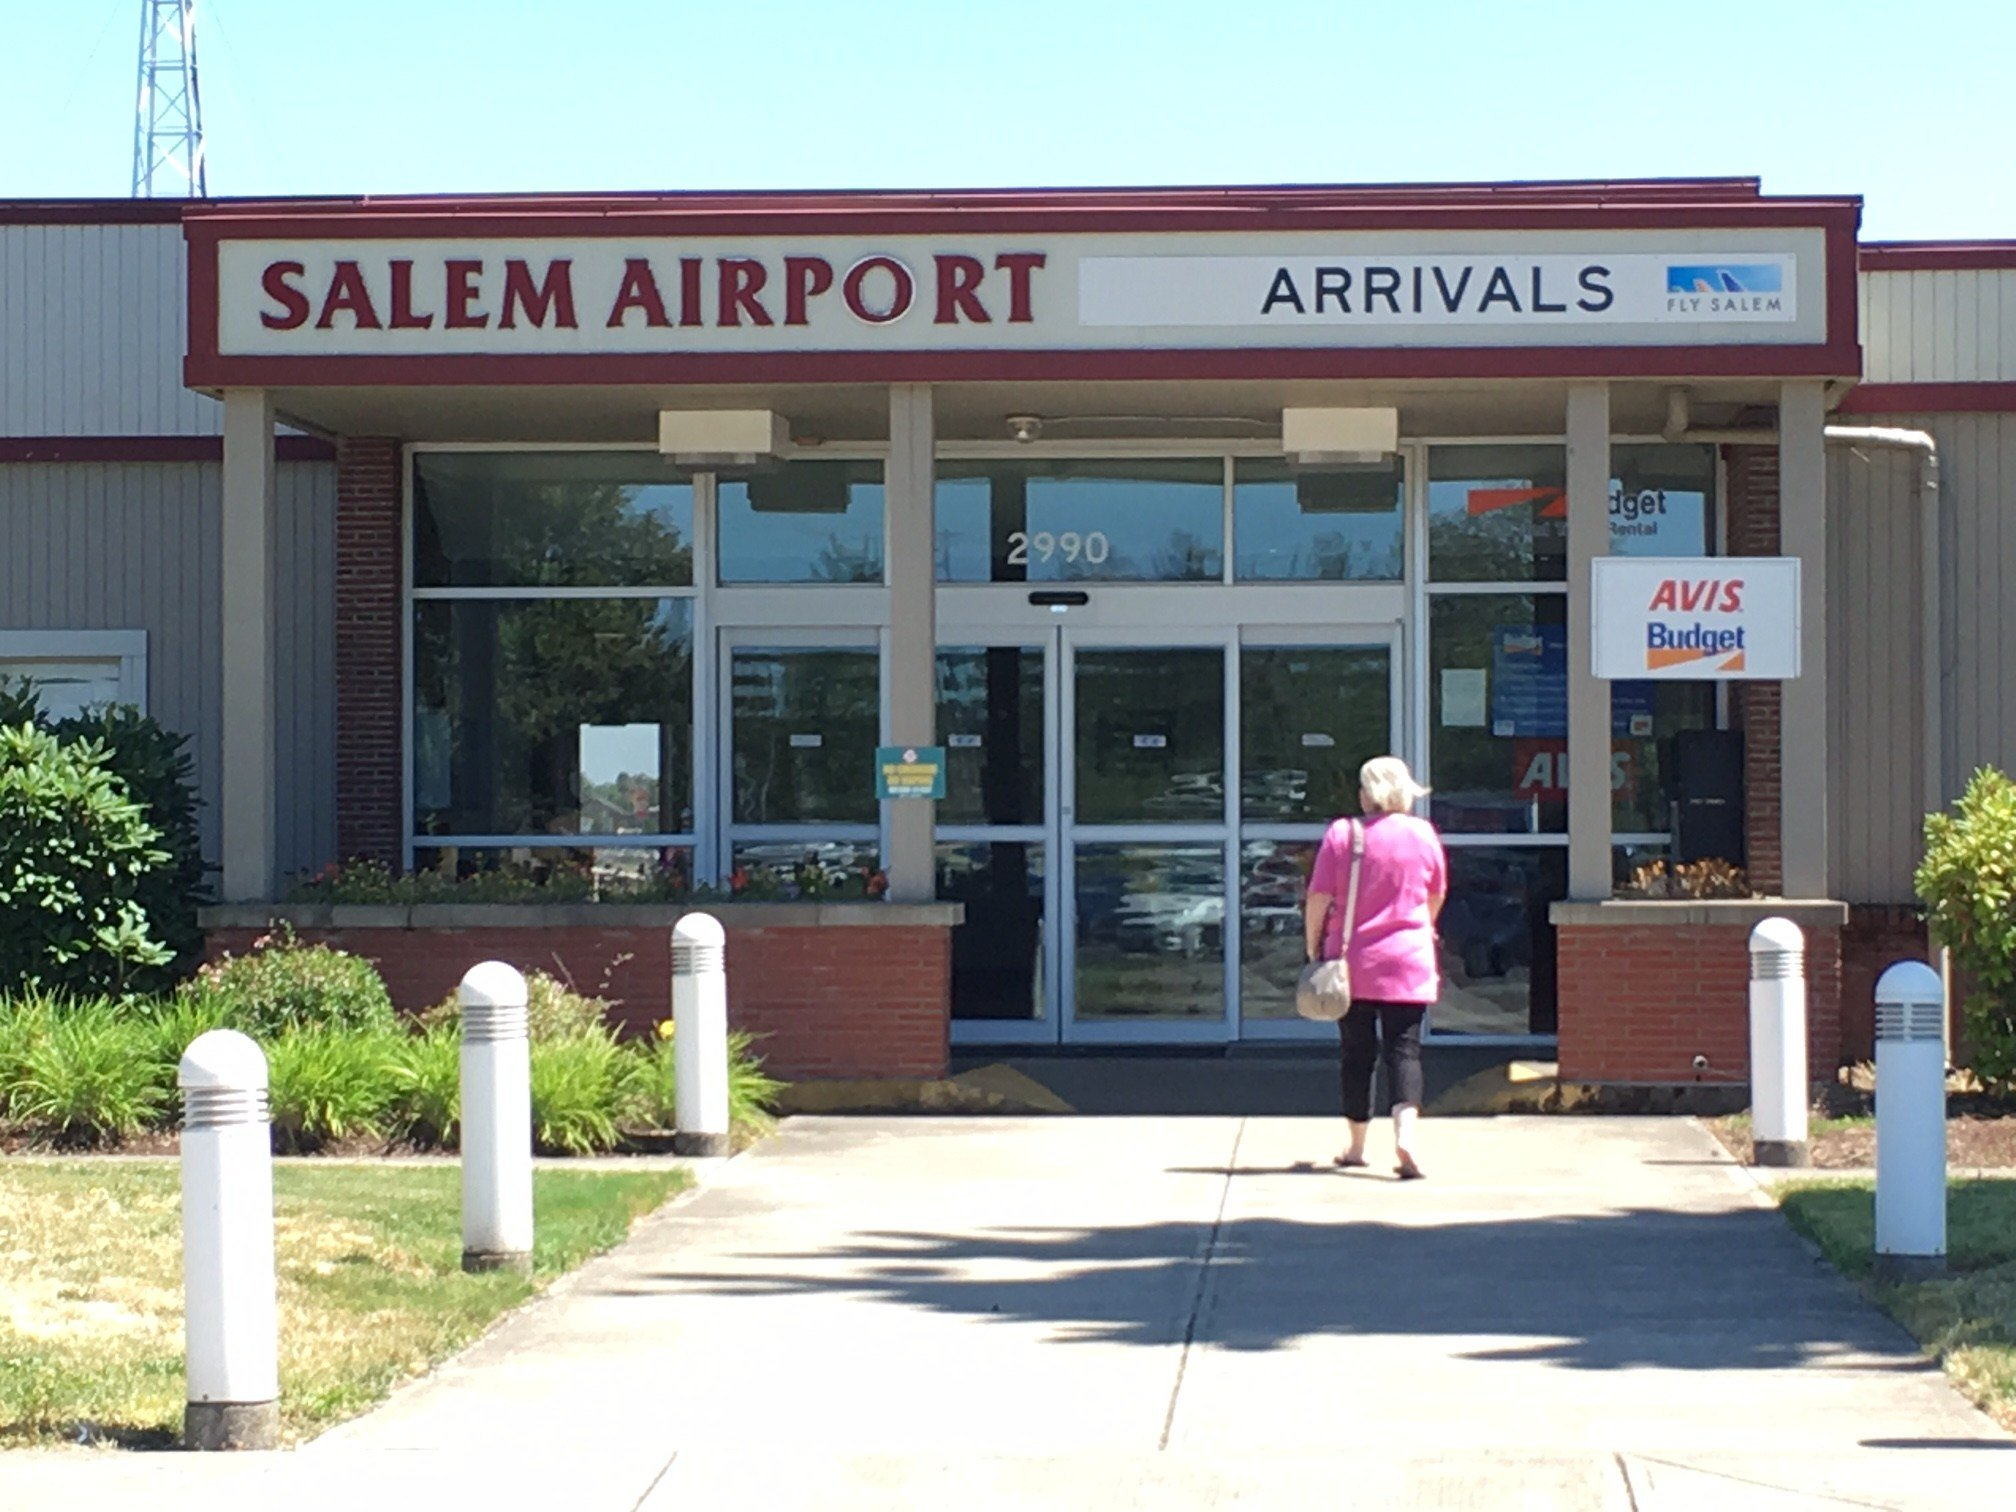 The main entrance at the Salem Airport.